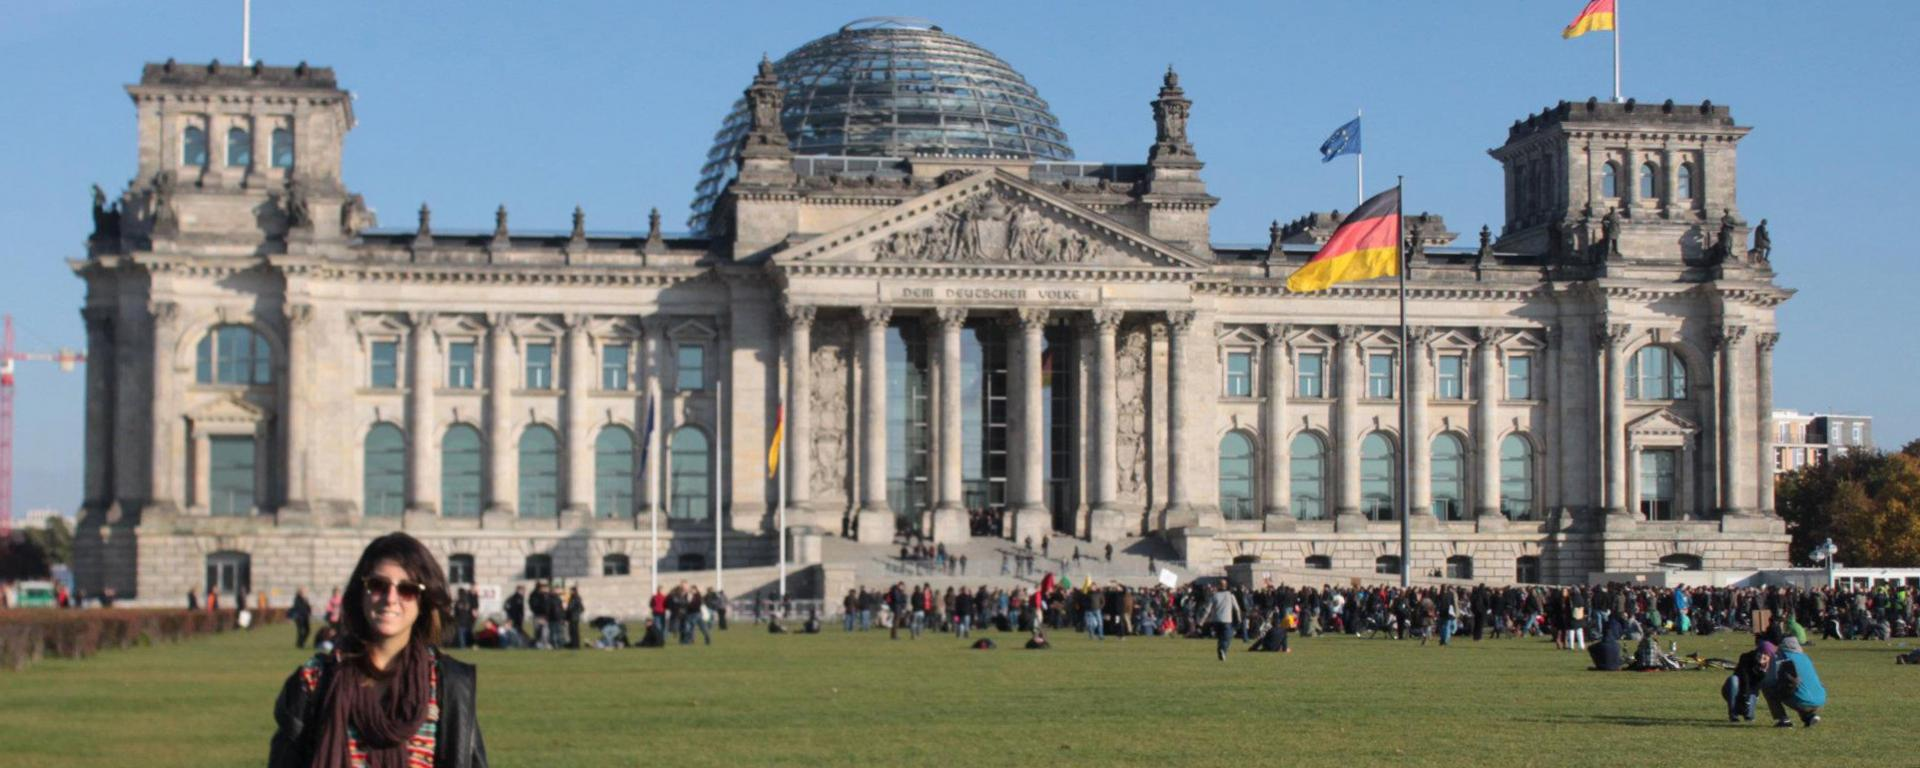 Study abroad student at the Reichstag